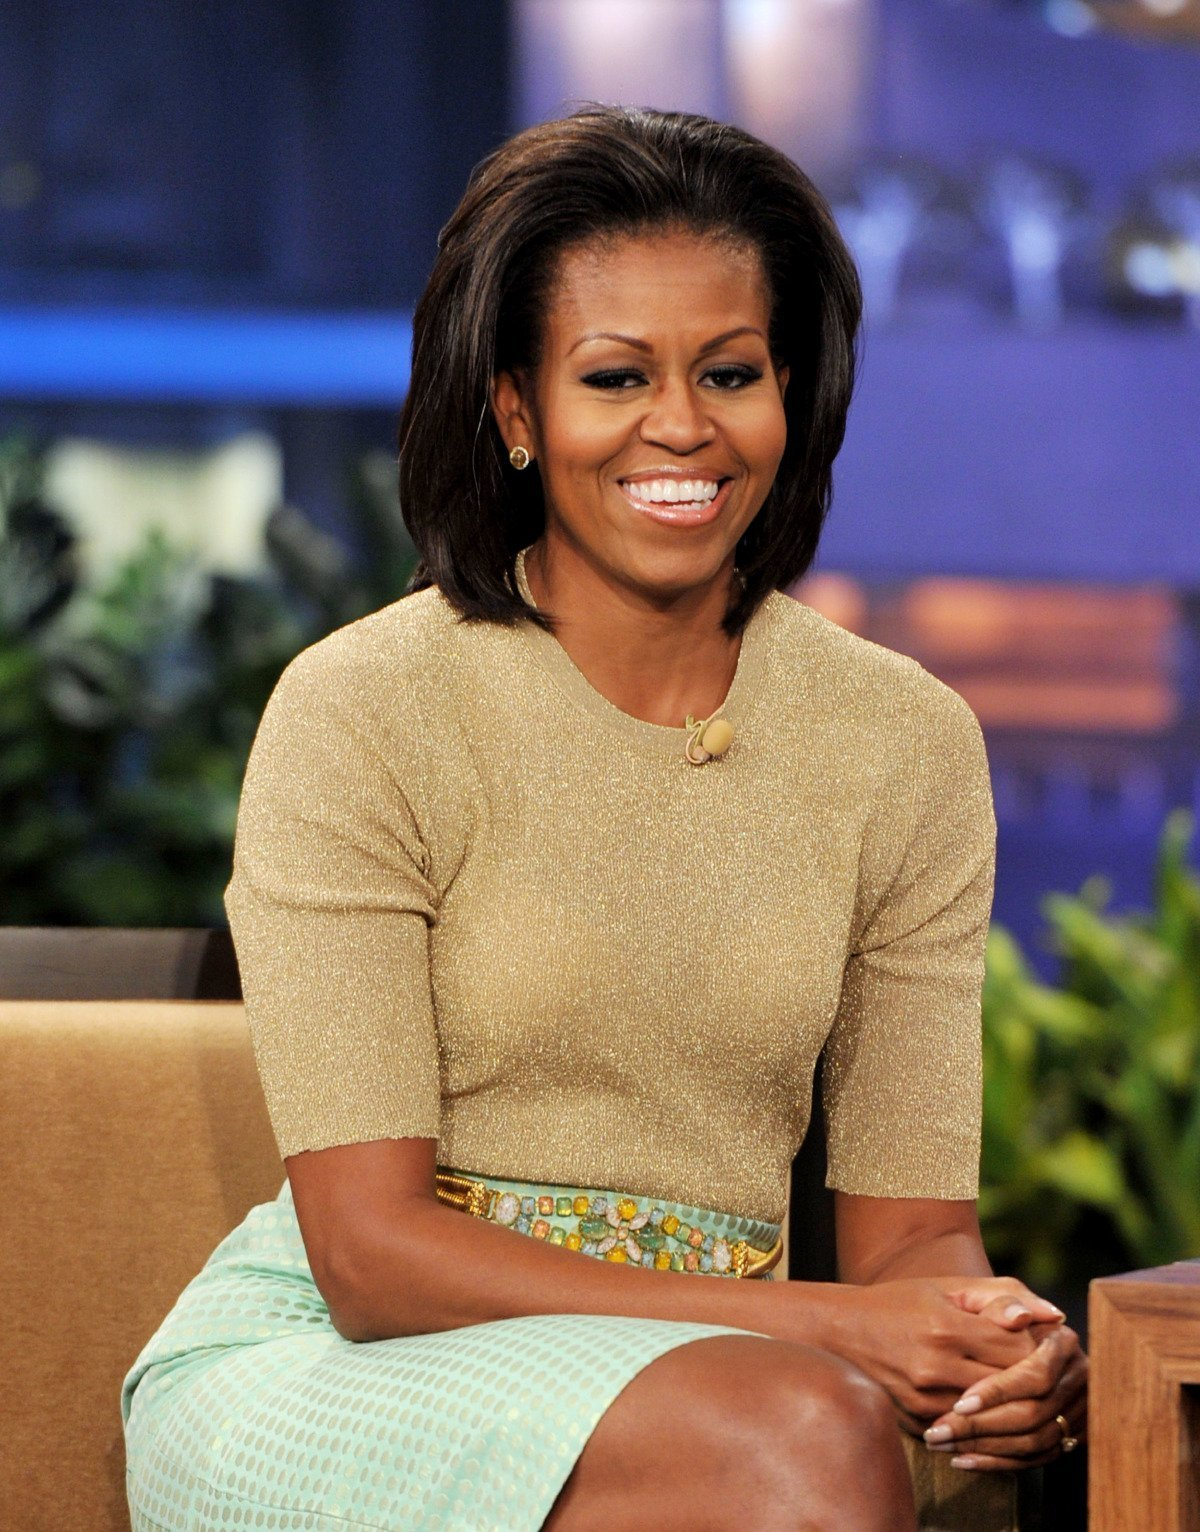 Michelle Obama appears on the Tonight Show With Jay Leno at NBC Studios on January 31, 2012. | Source: Getty Images